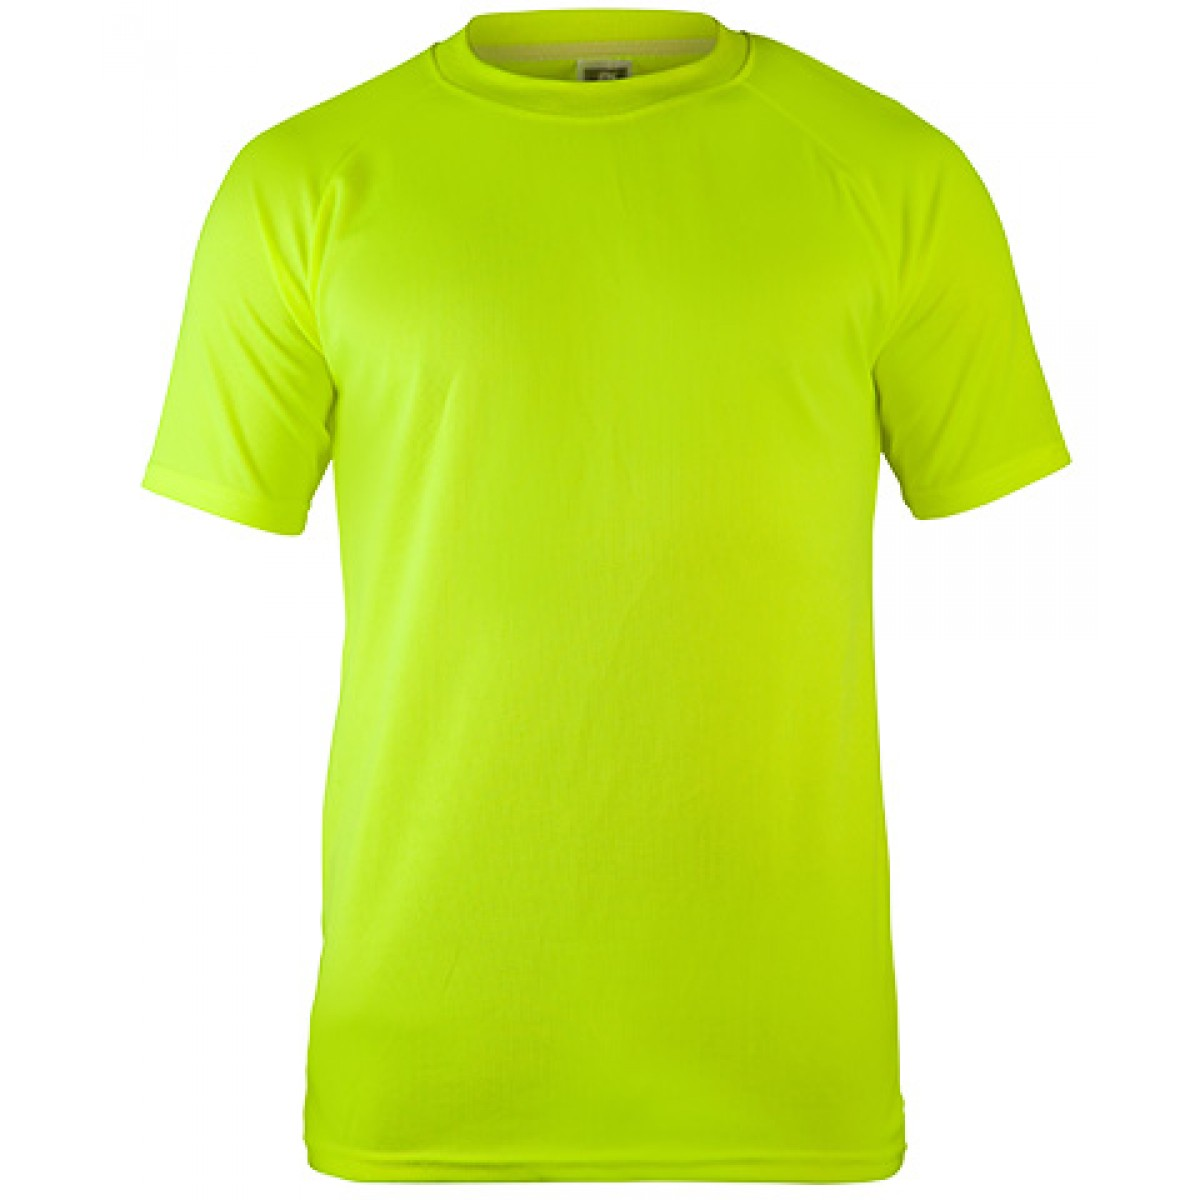 Performance T-shirt-Safety Green-YS